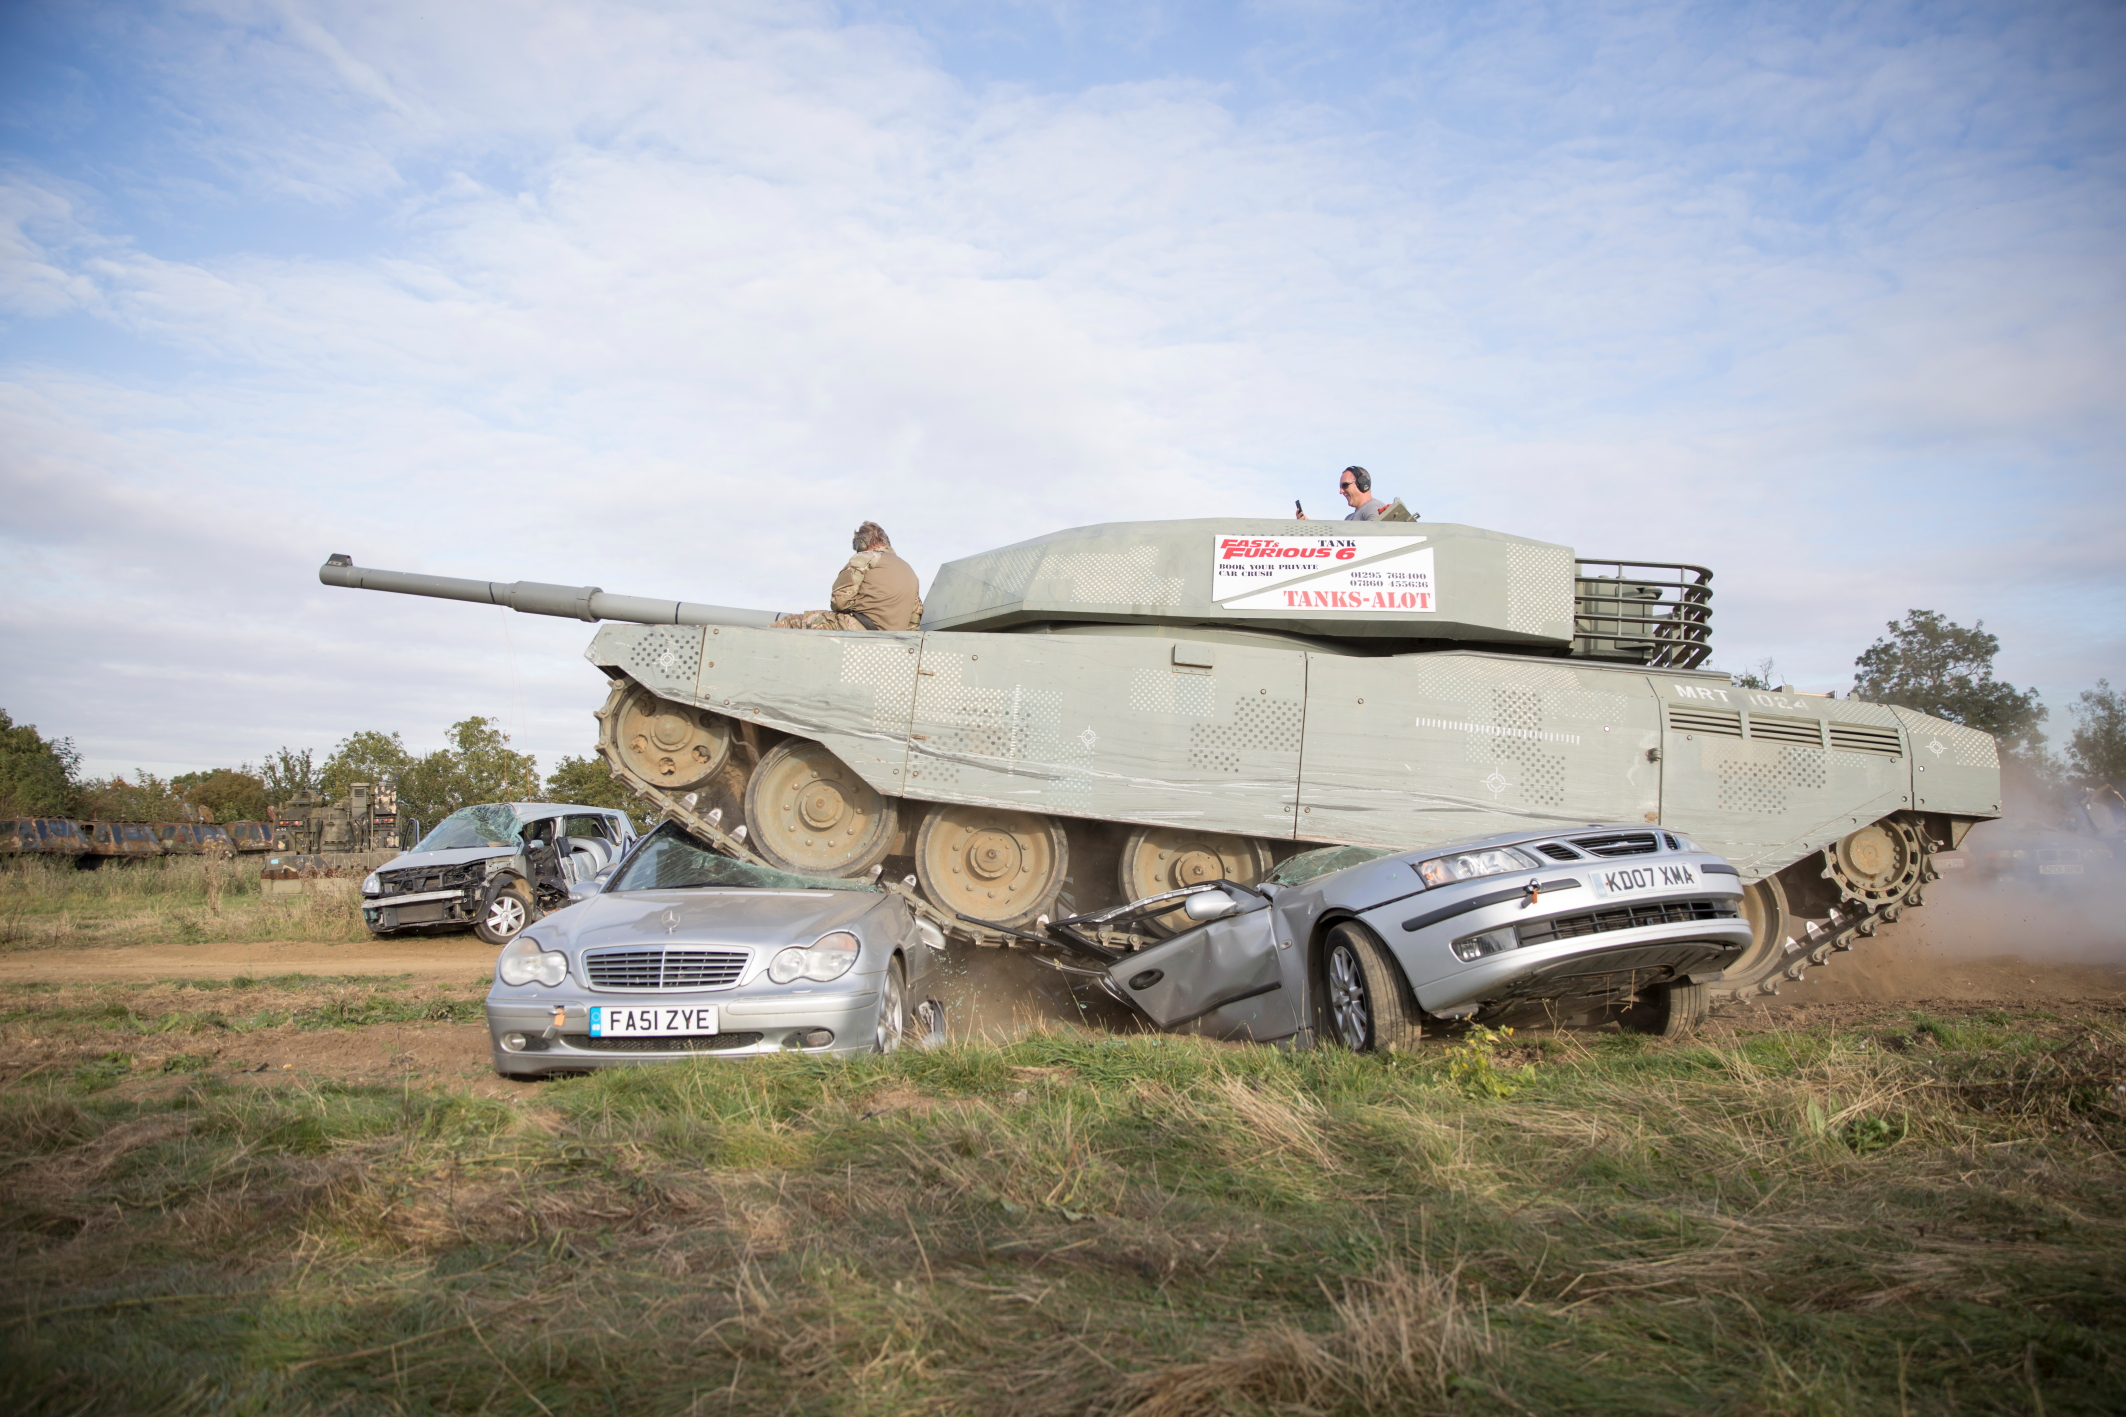 A tank drives over 2 cars, crushing them underneath them beneath the caterpillar tracks